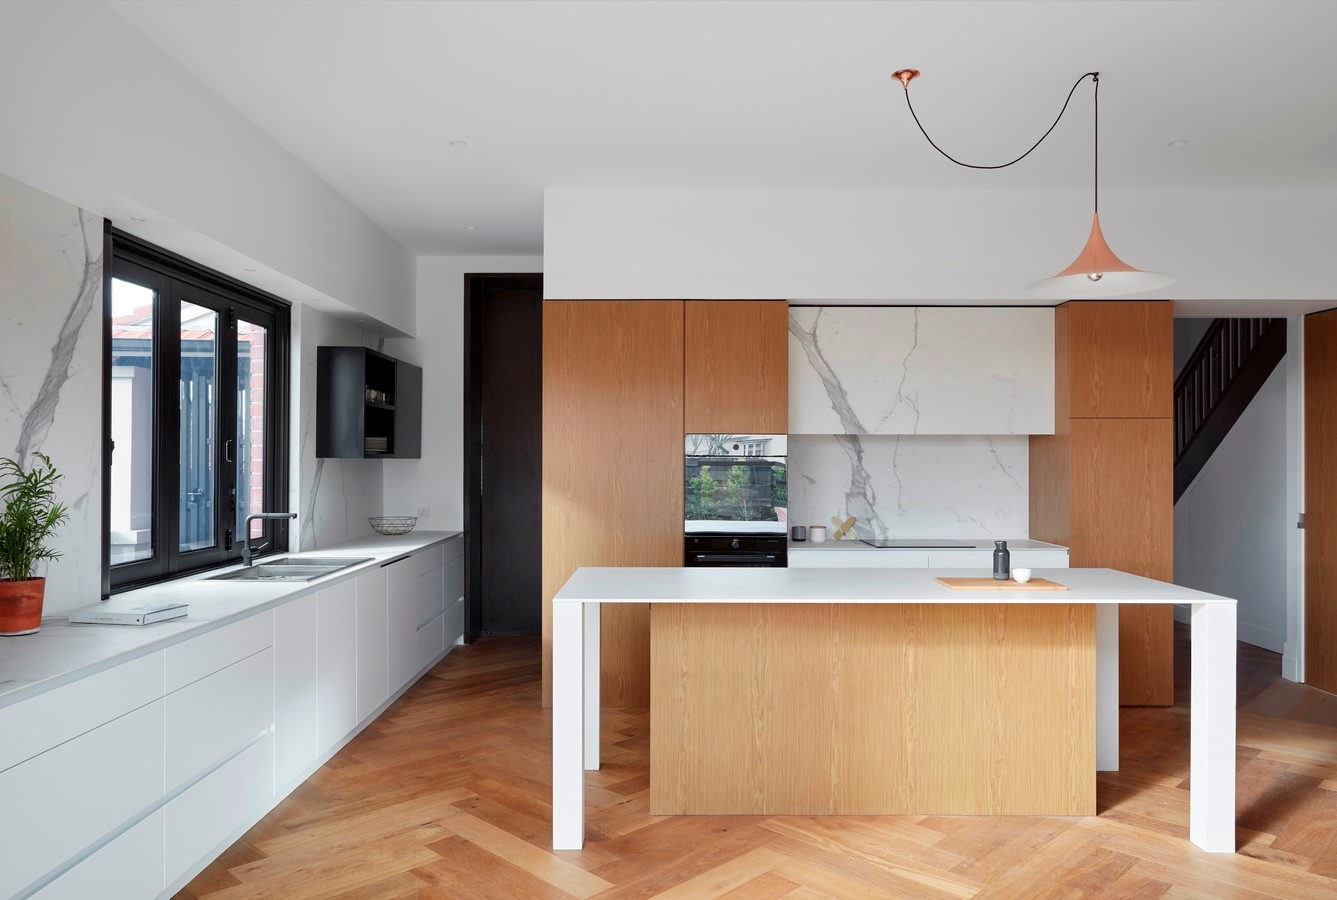 Copper Pot House by Jane Riddell Architects - Sheet2